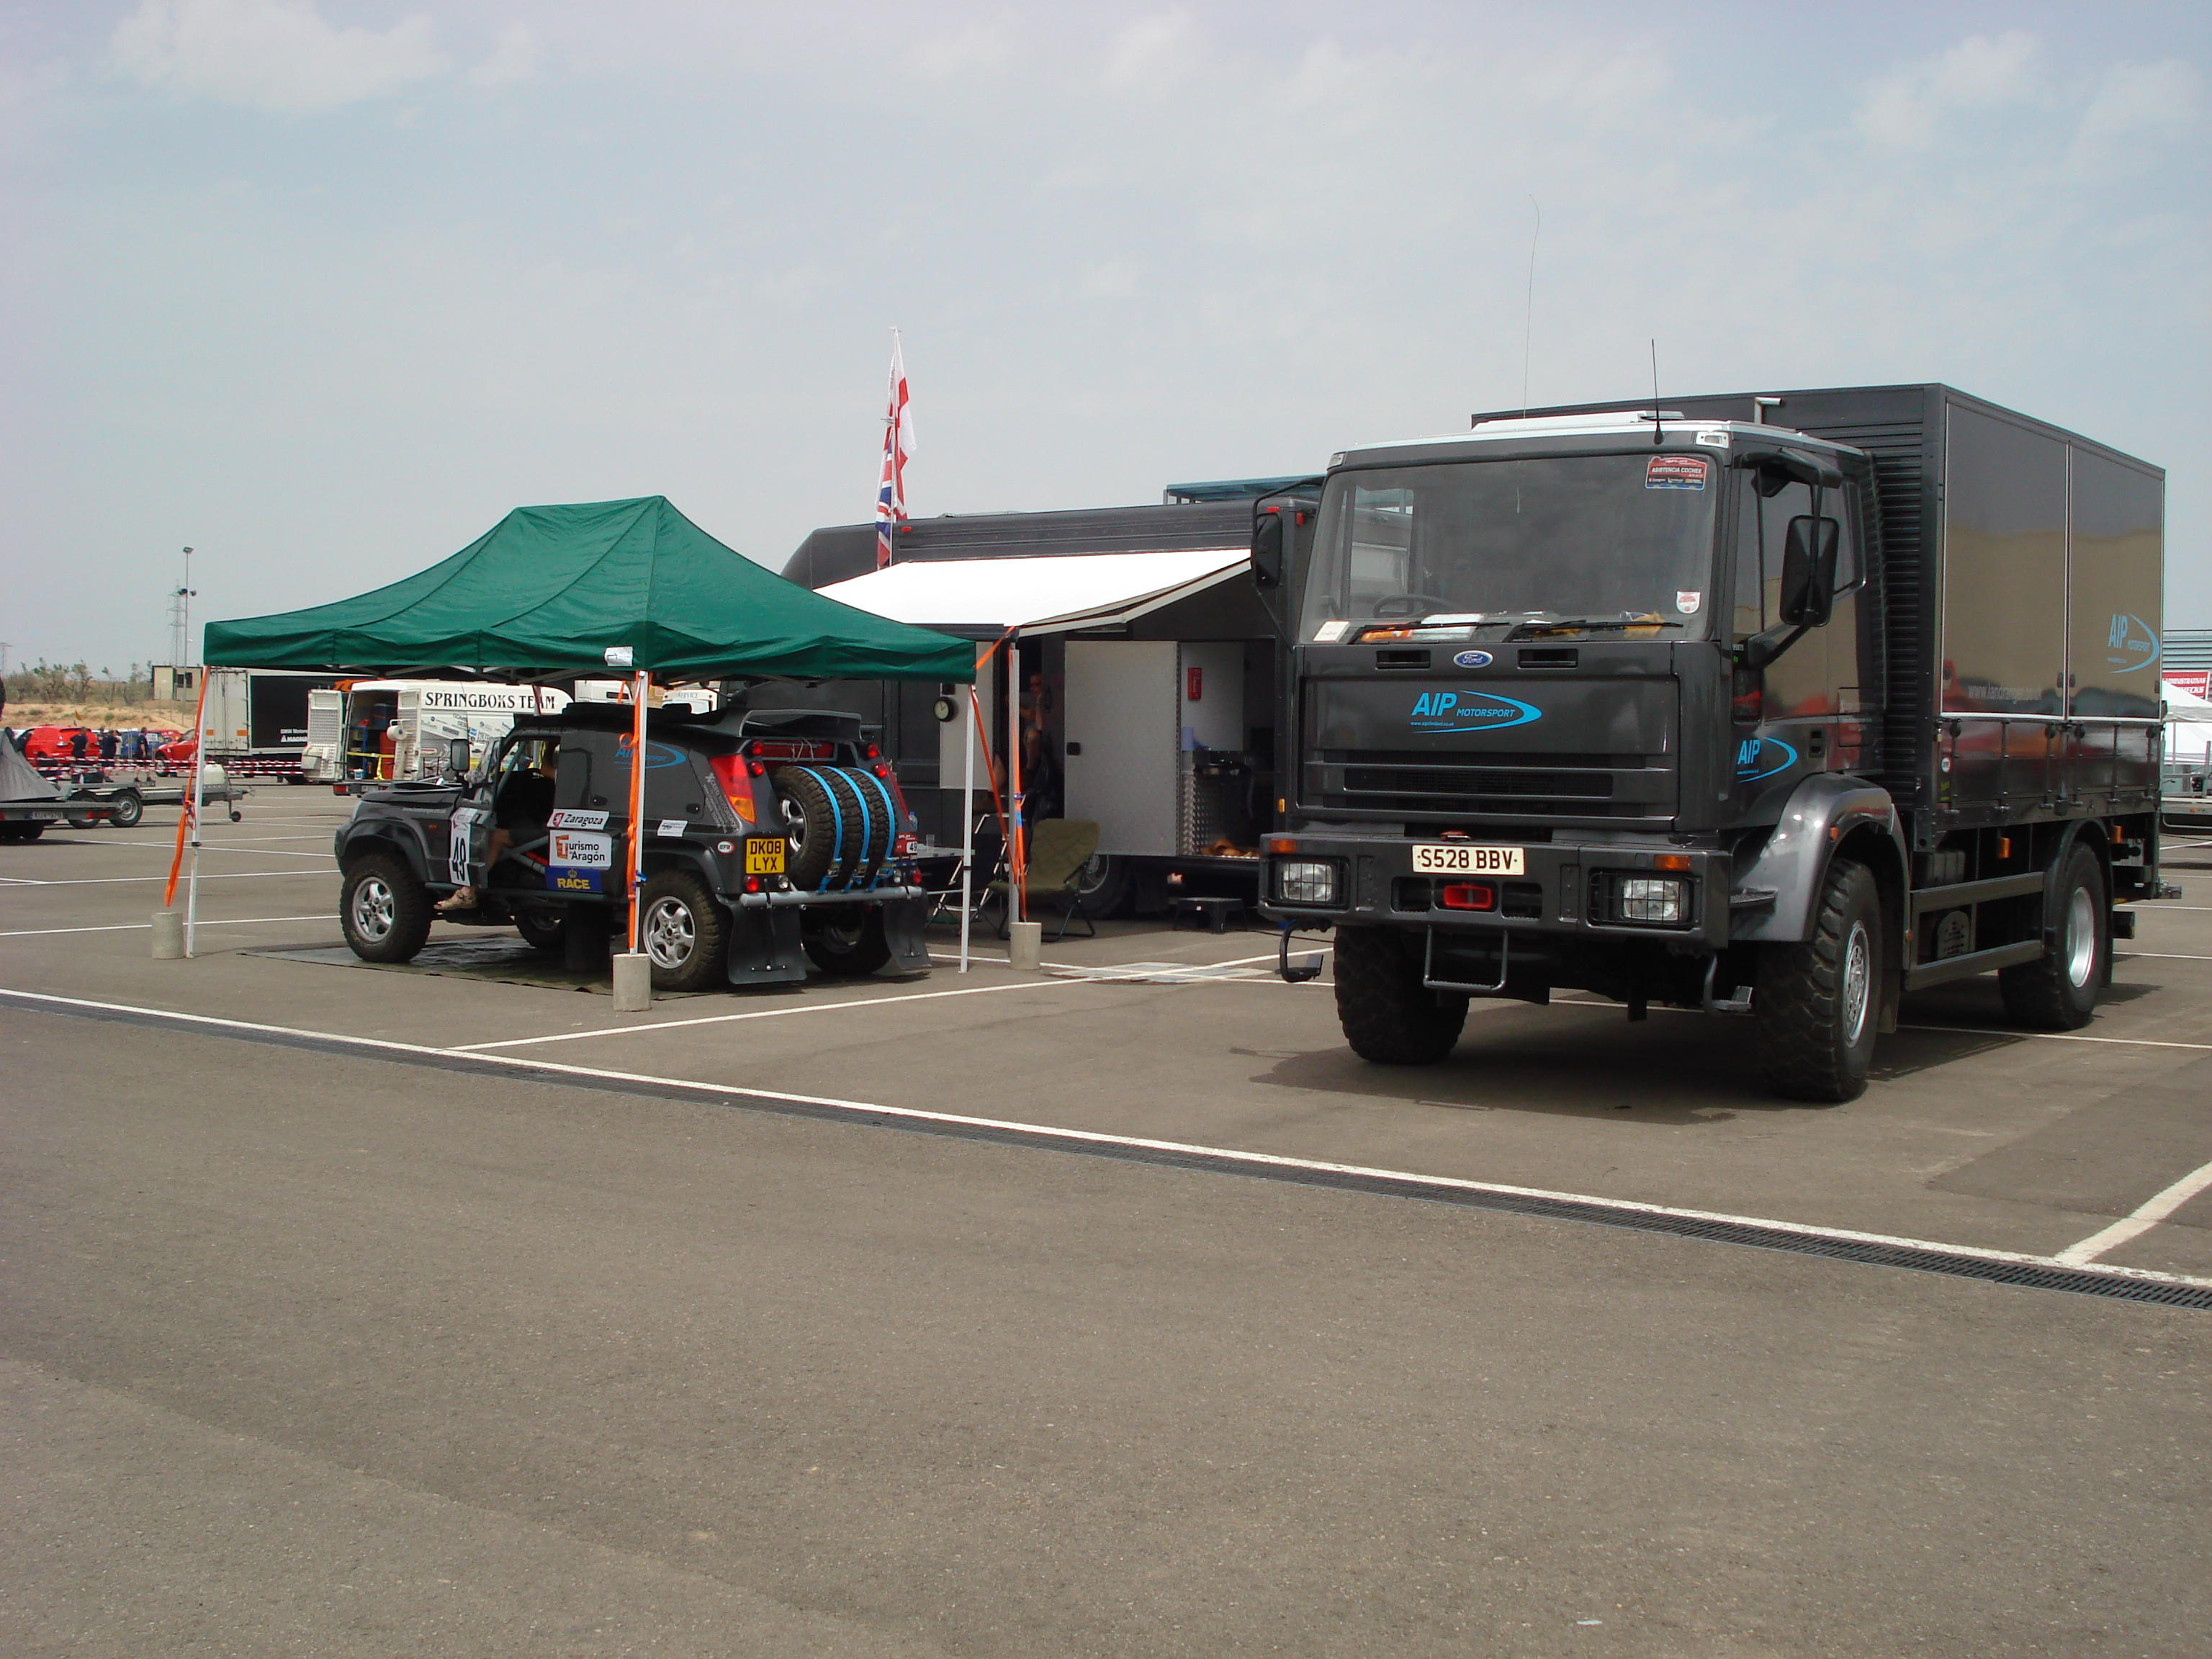 Xceed- AIP Motorsport Support Vehicles